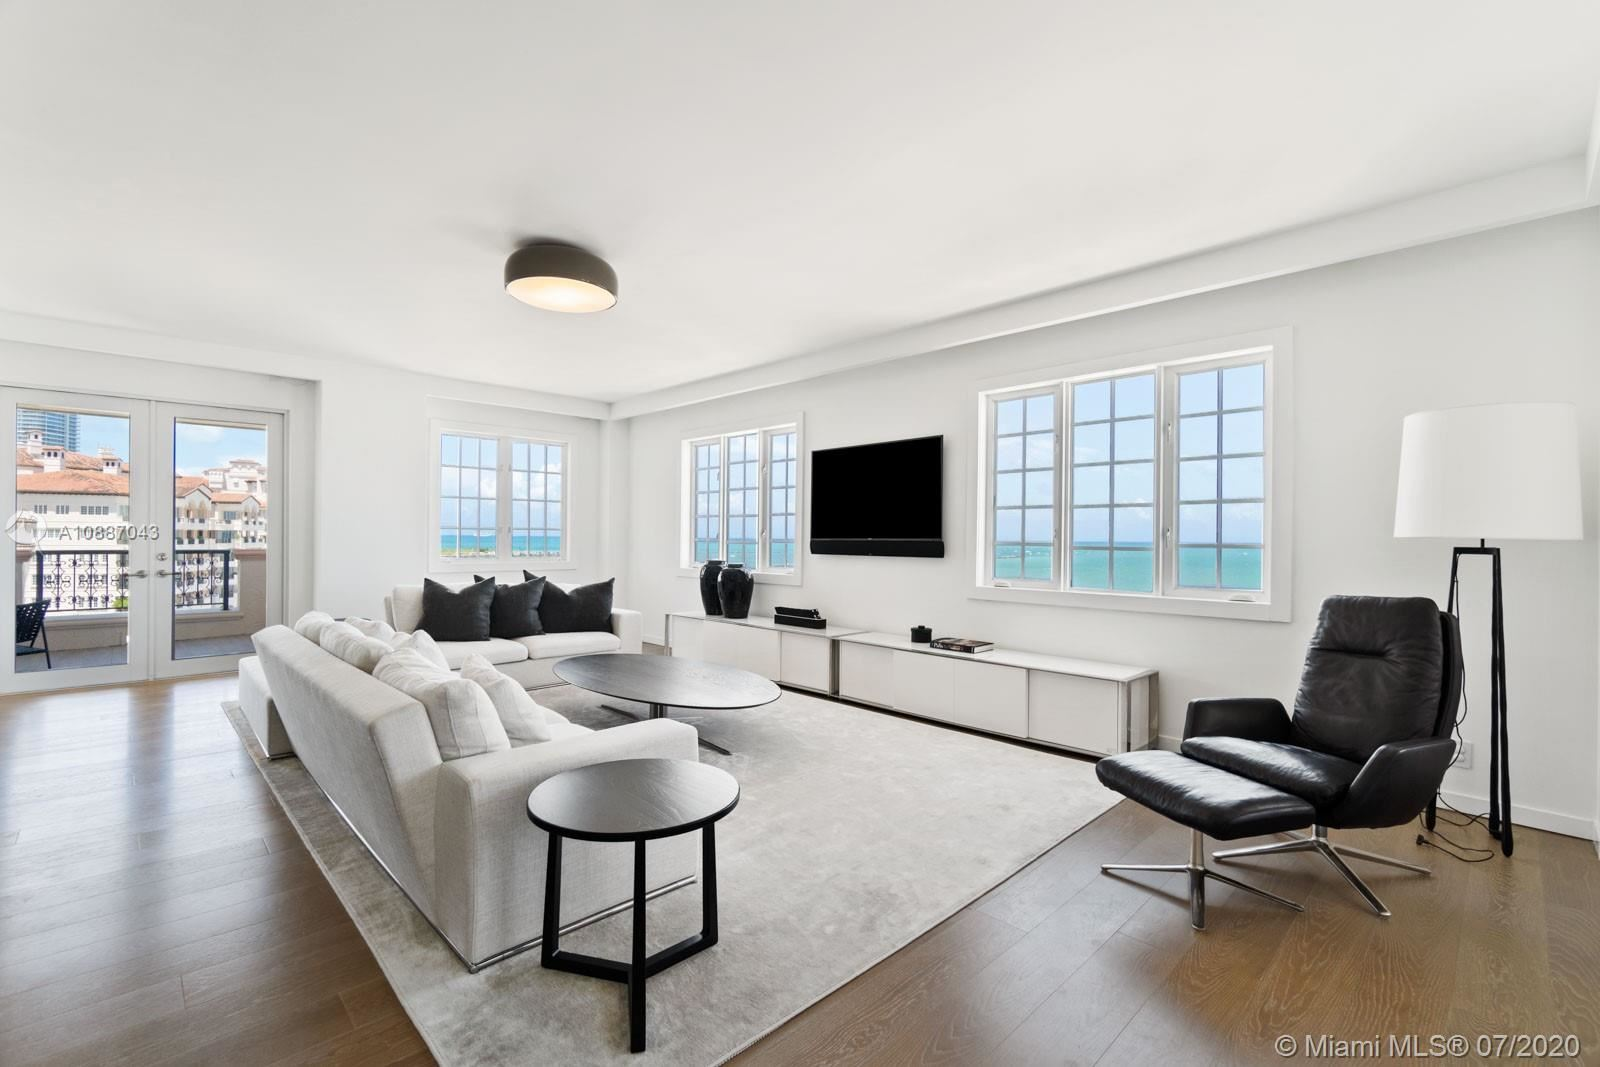 Photo 5 of Listing MLS a10887043 in 7764 Fisher Island Dr #7764 Miami Beach FL 33109